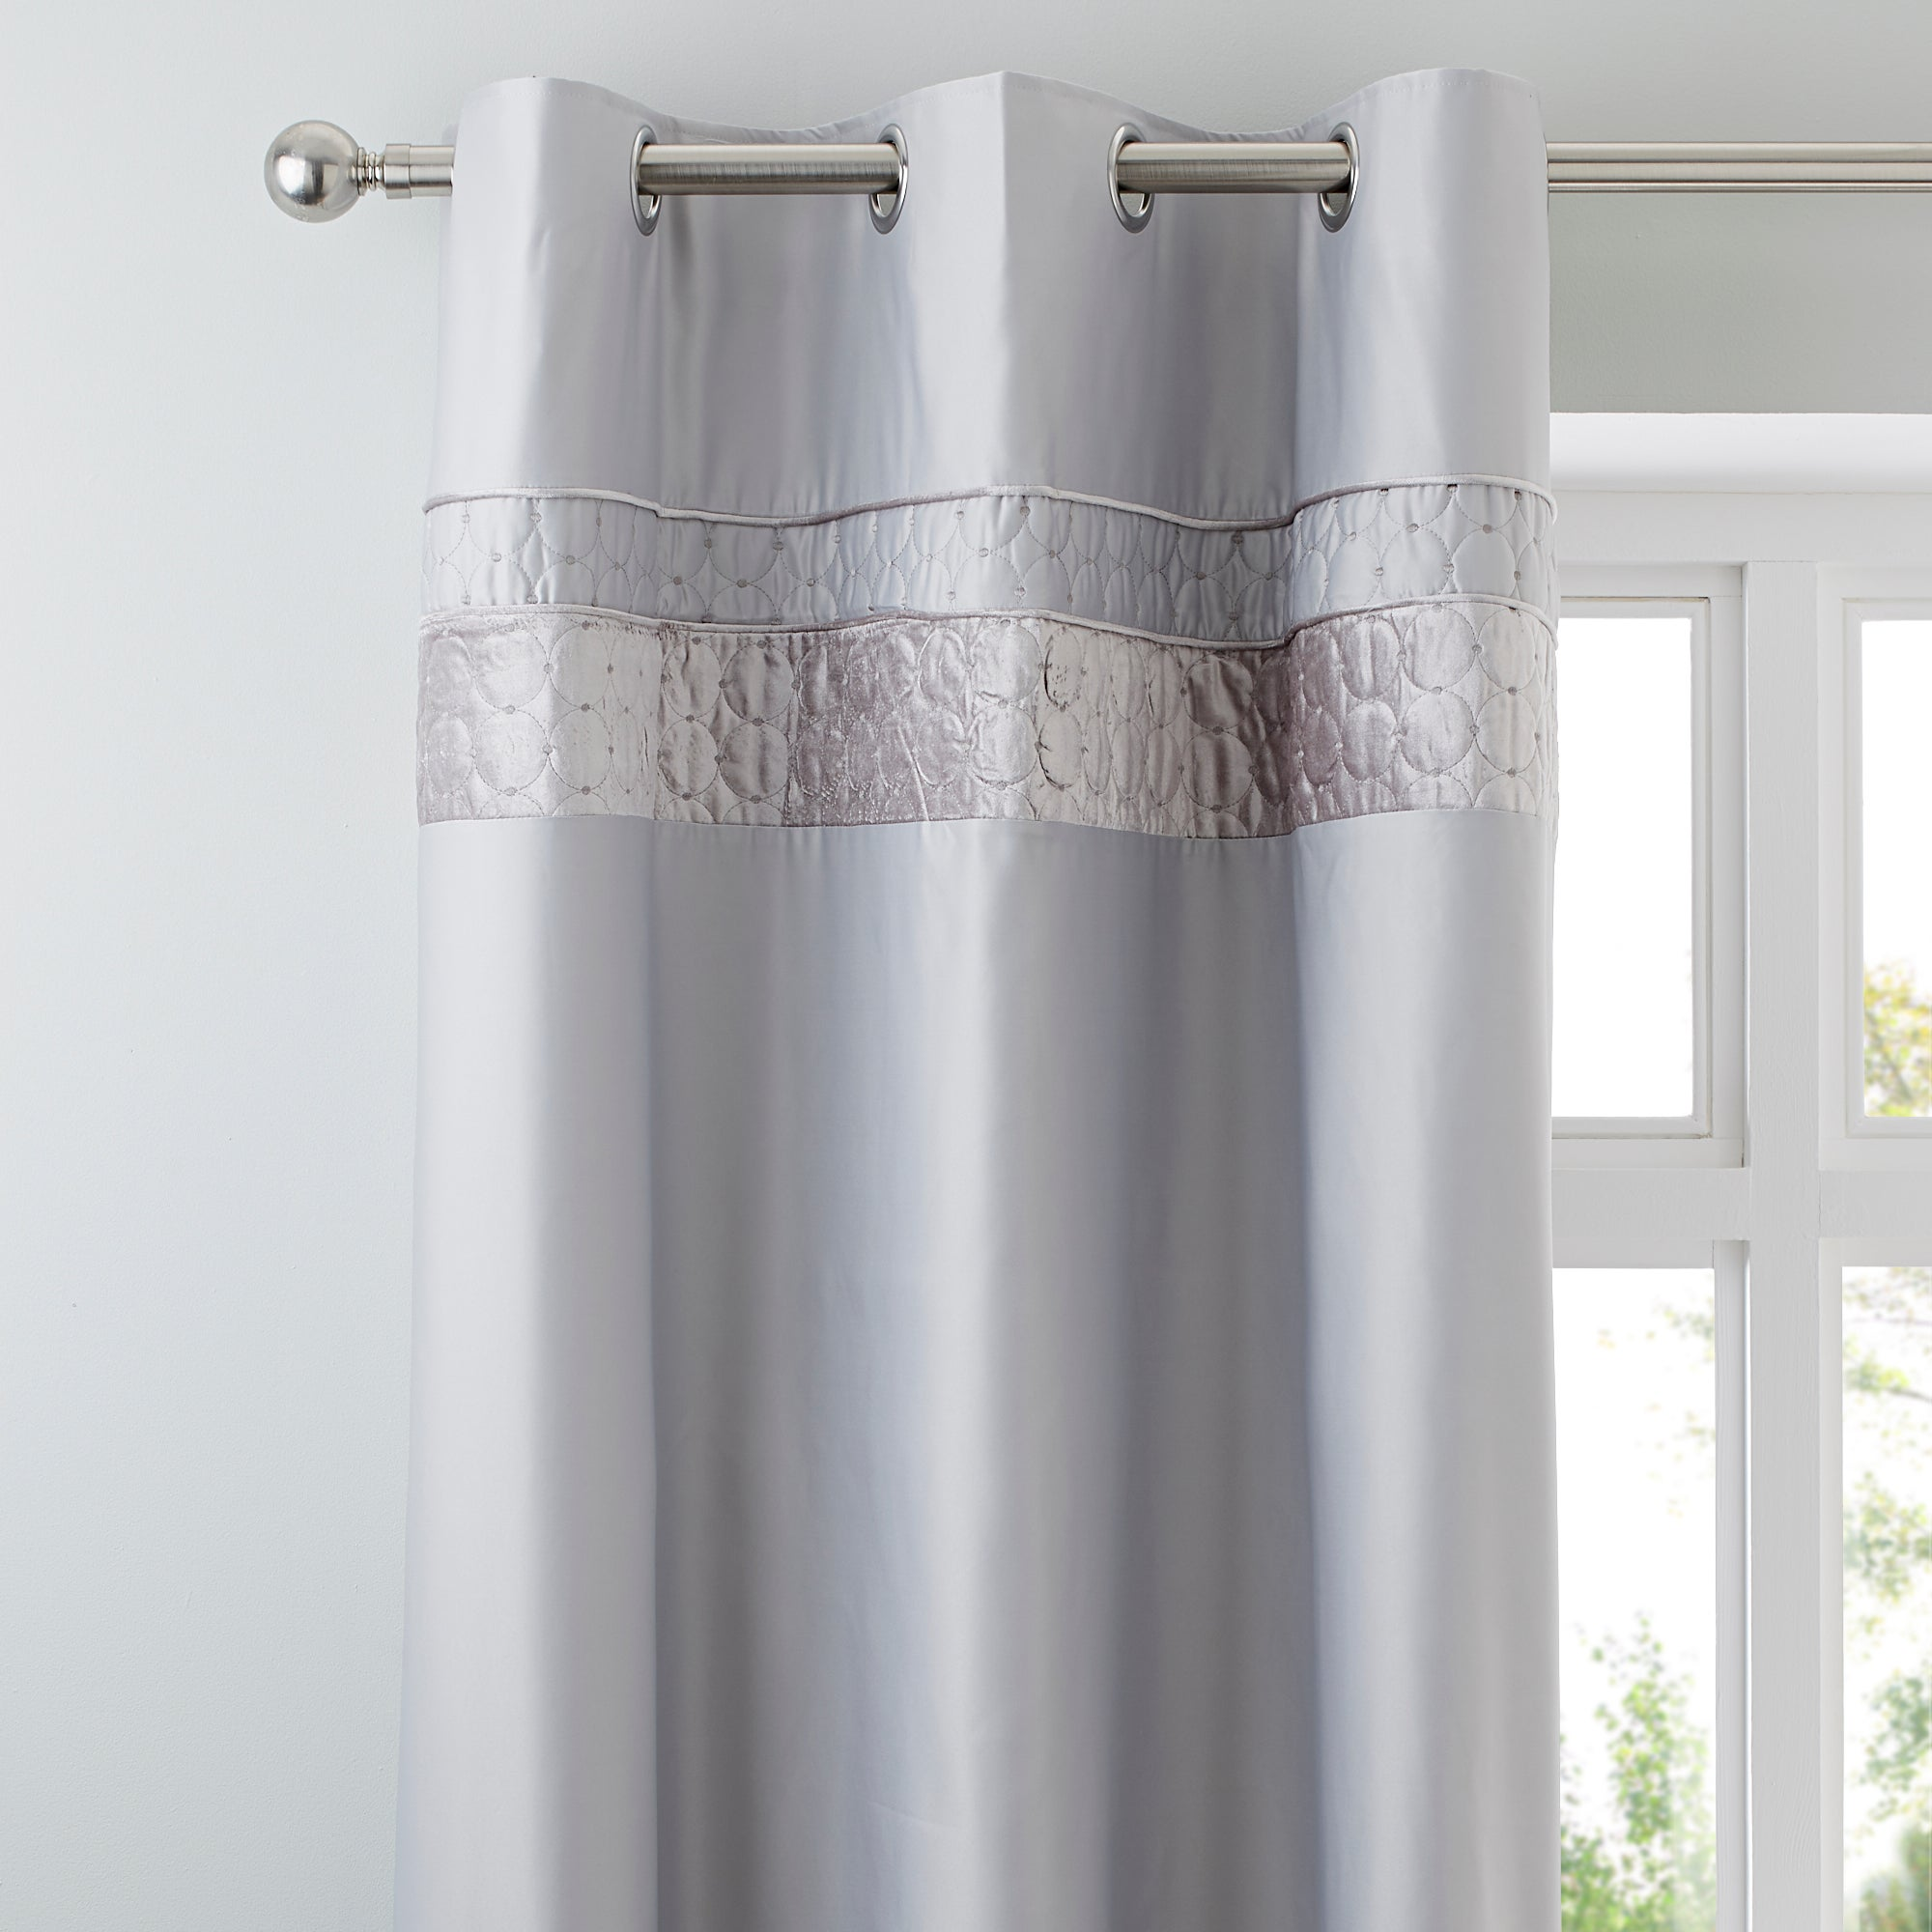 Silver Vienna Collection Thermal Eyelet Curtains